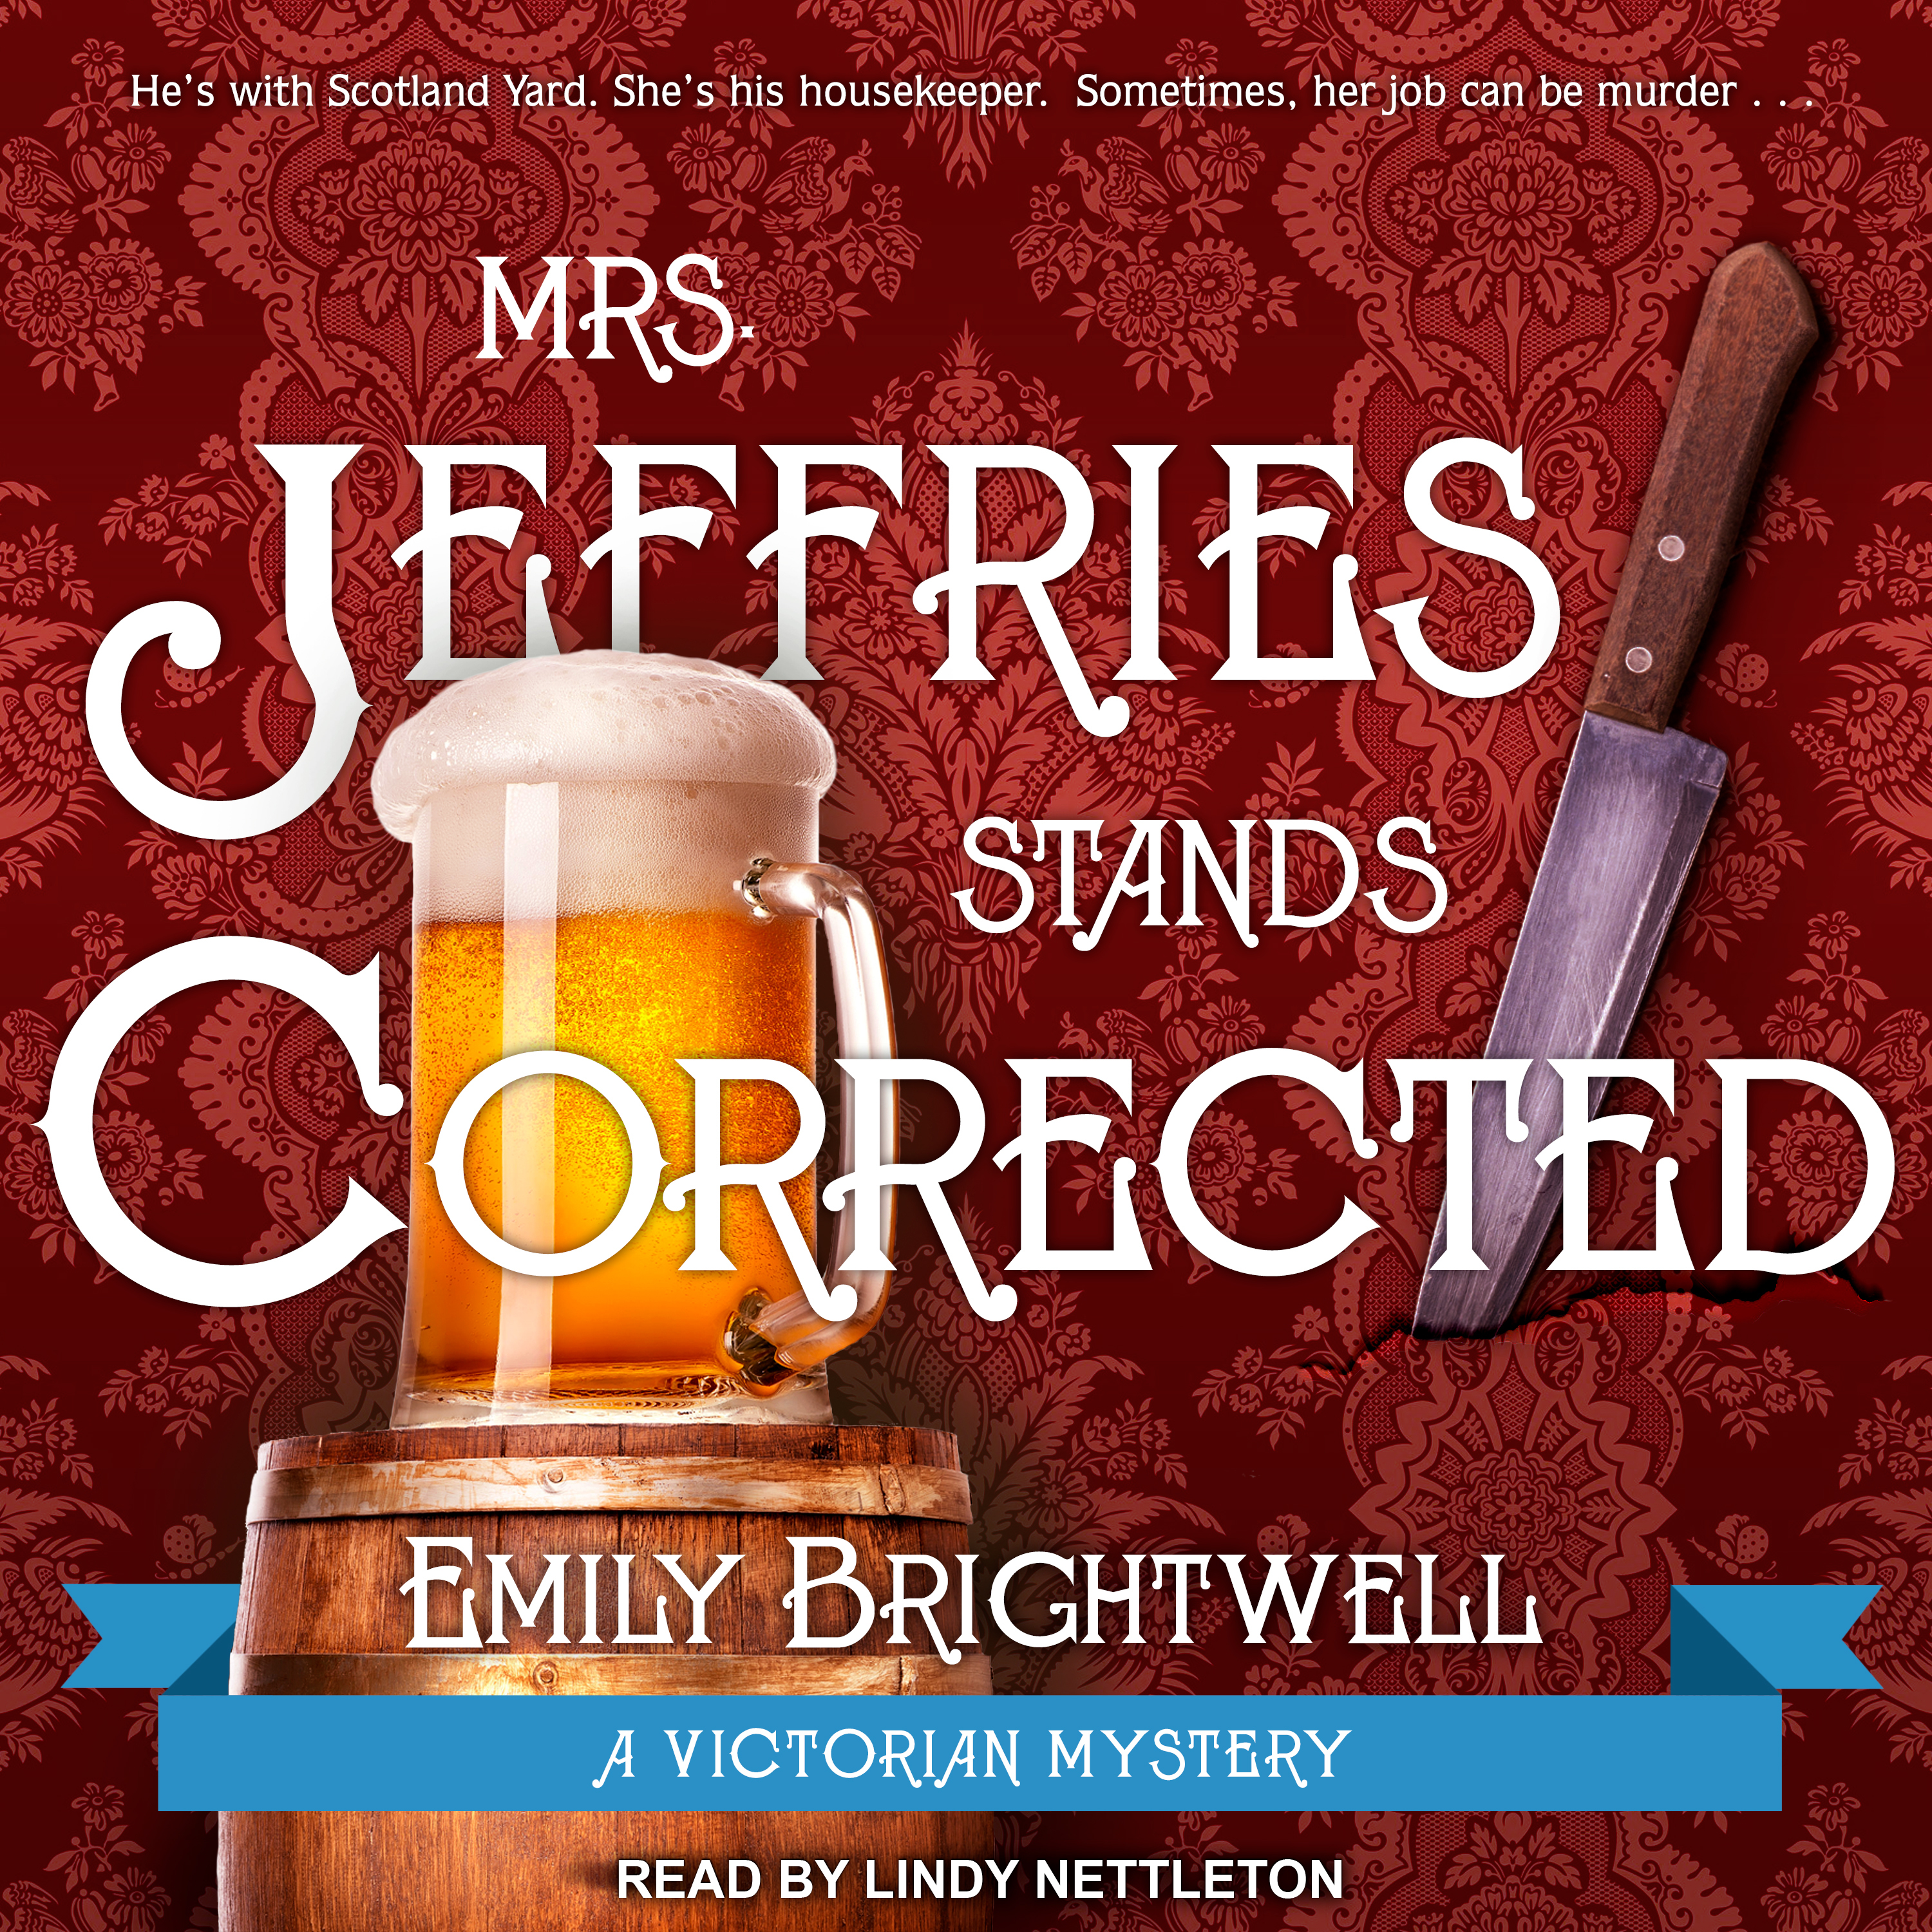 Printable Mrs. Jeffries Stands Corrected Audiobook Cover Art